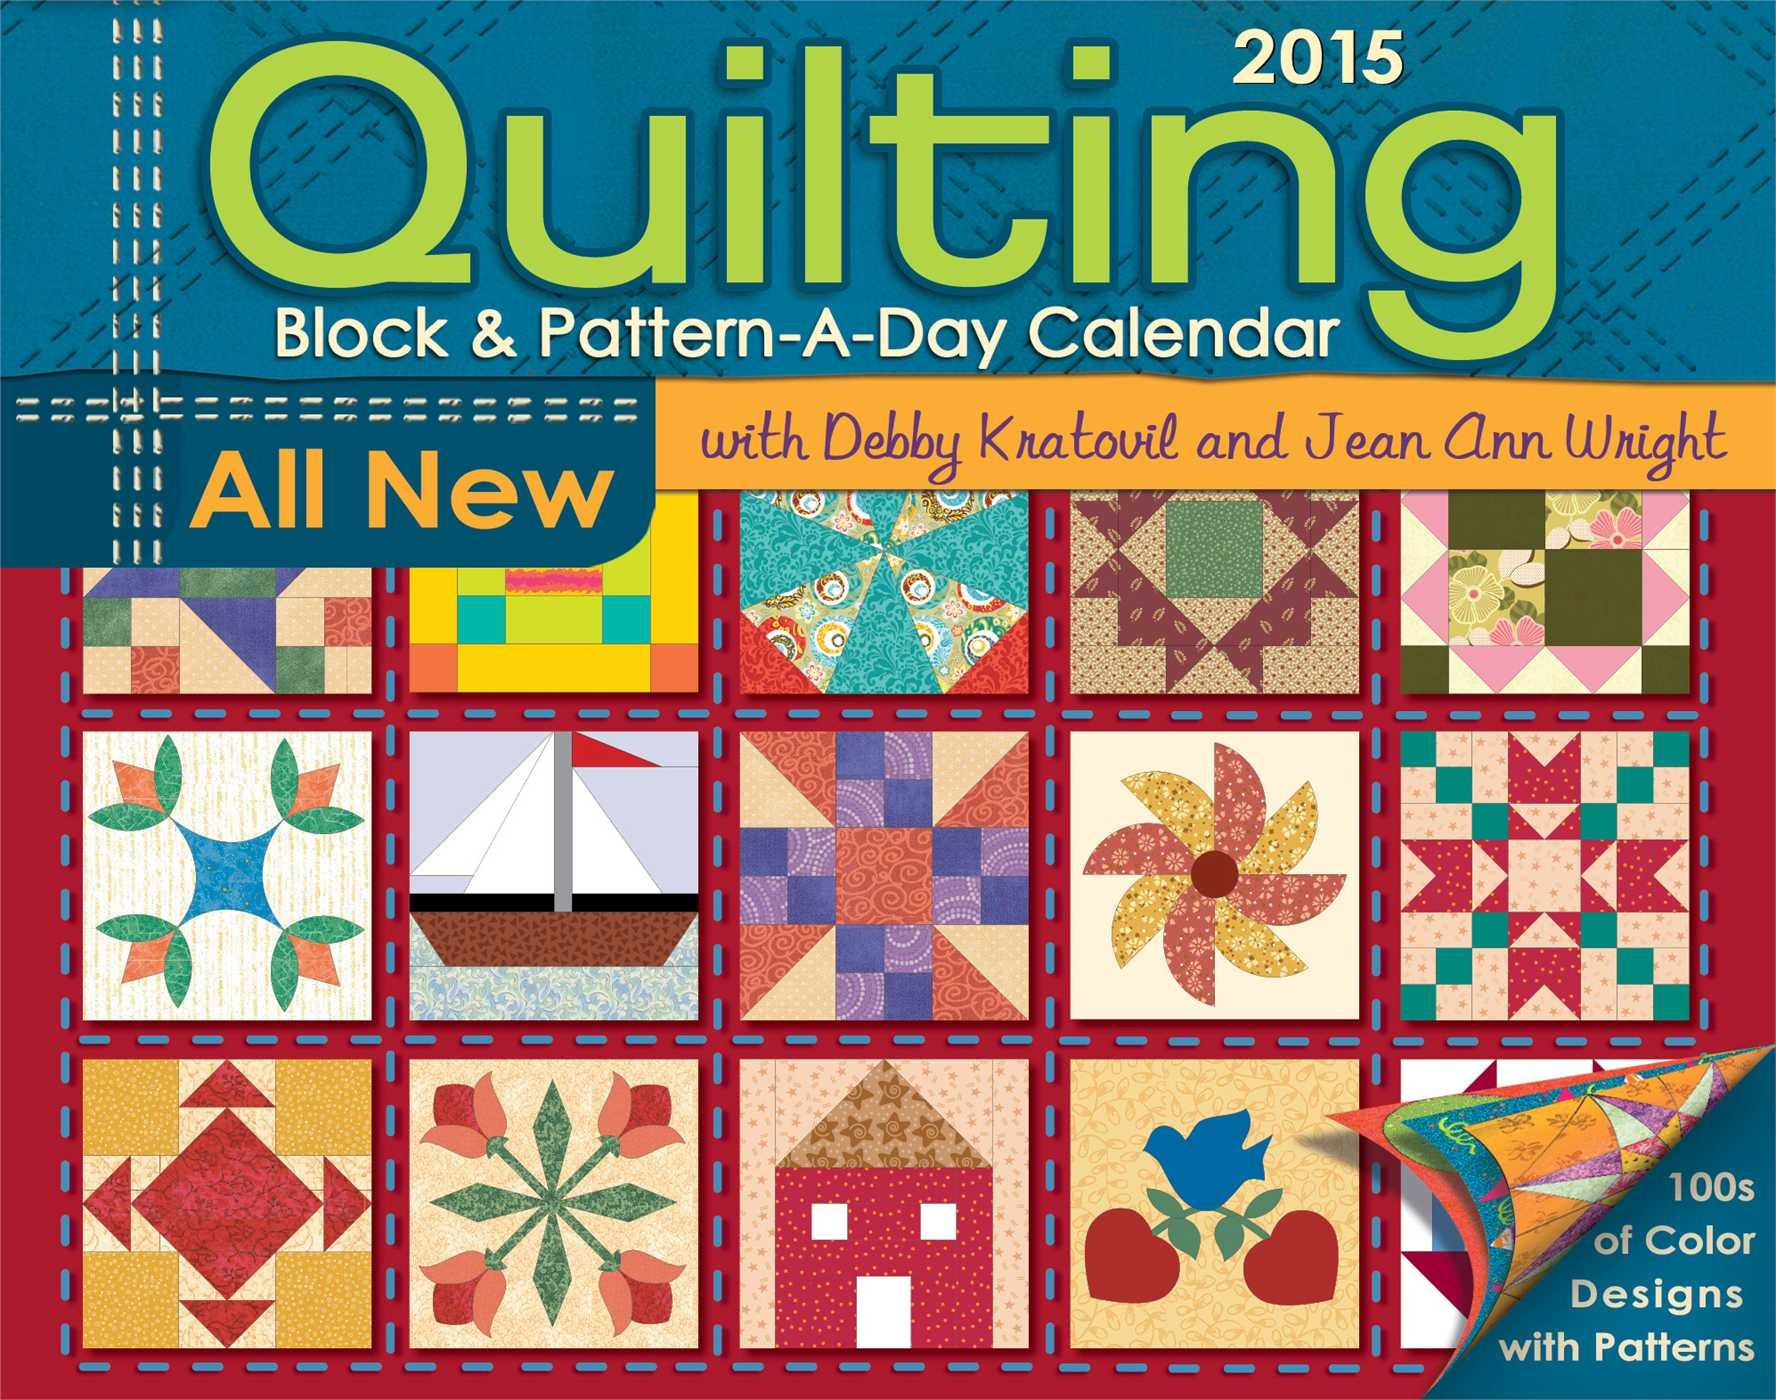 Quilting Block & Pattern-a-Day 2015 Calendar Calendar – Day to Day Calendar, July 15, 2014 Debby Kratovil Jean Ann Wright Accord Publishing a division of Andrews McMeel